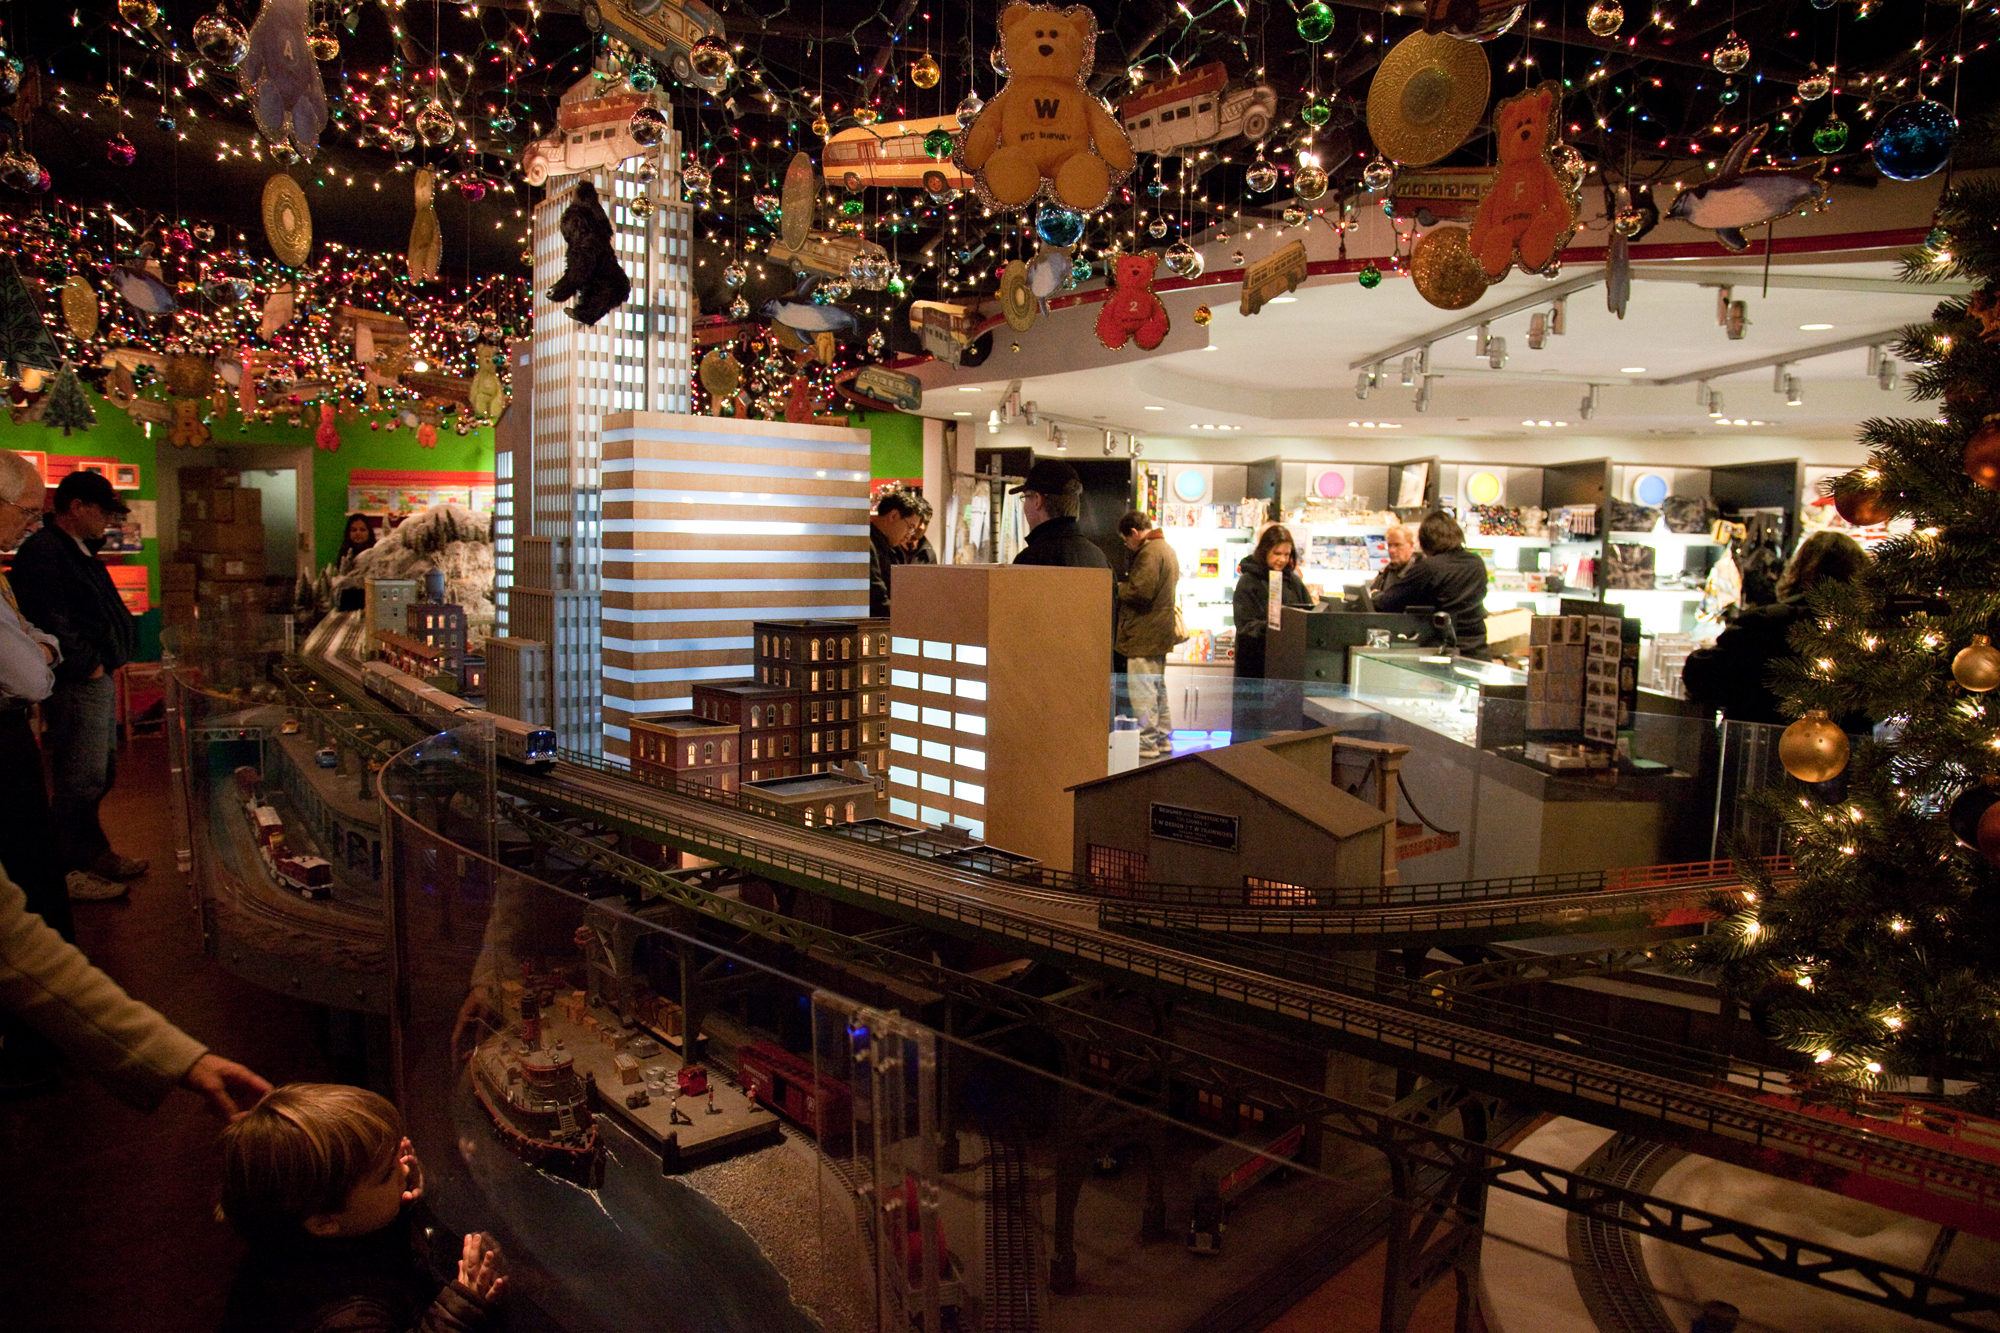 New York Transit Museum's Holiday Train Show | Things to do in New York